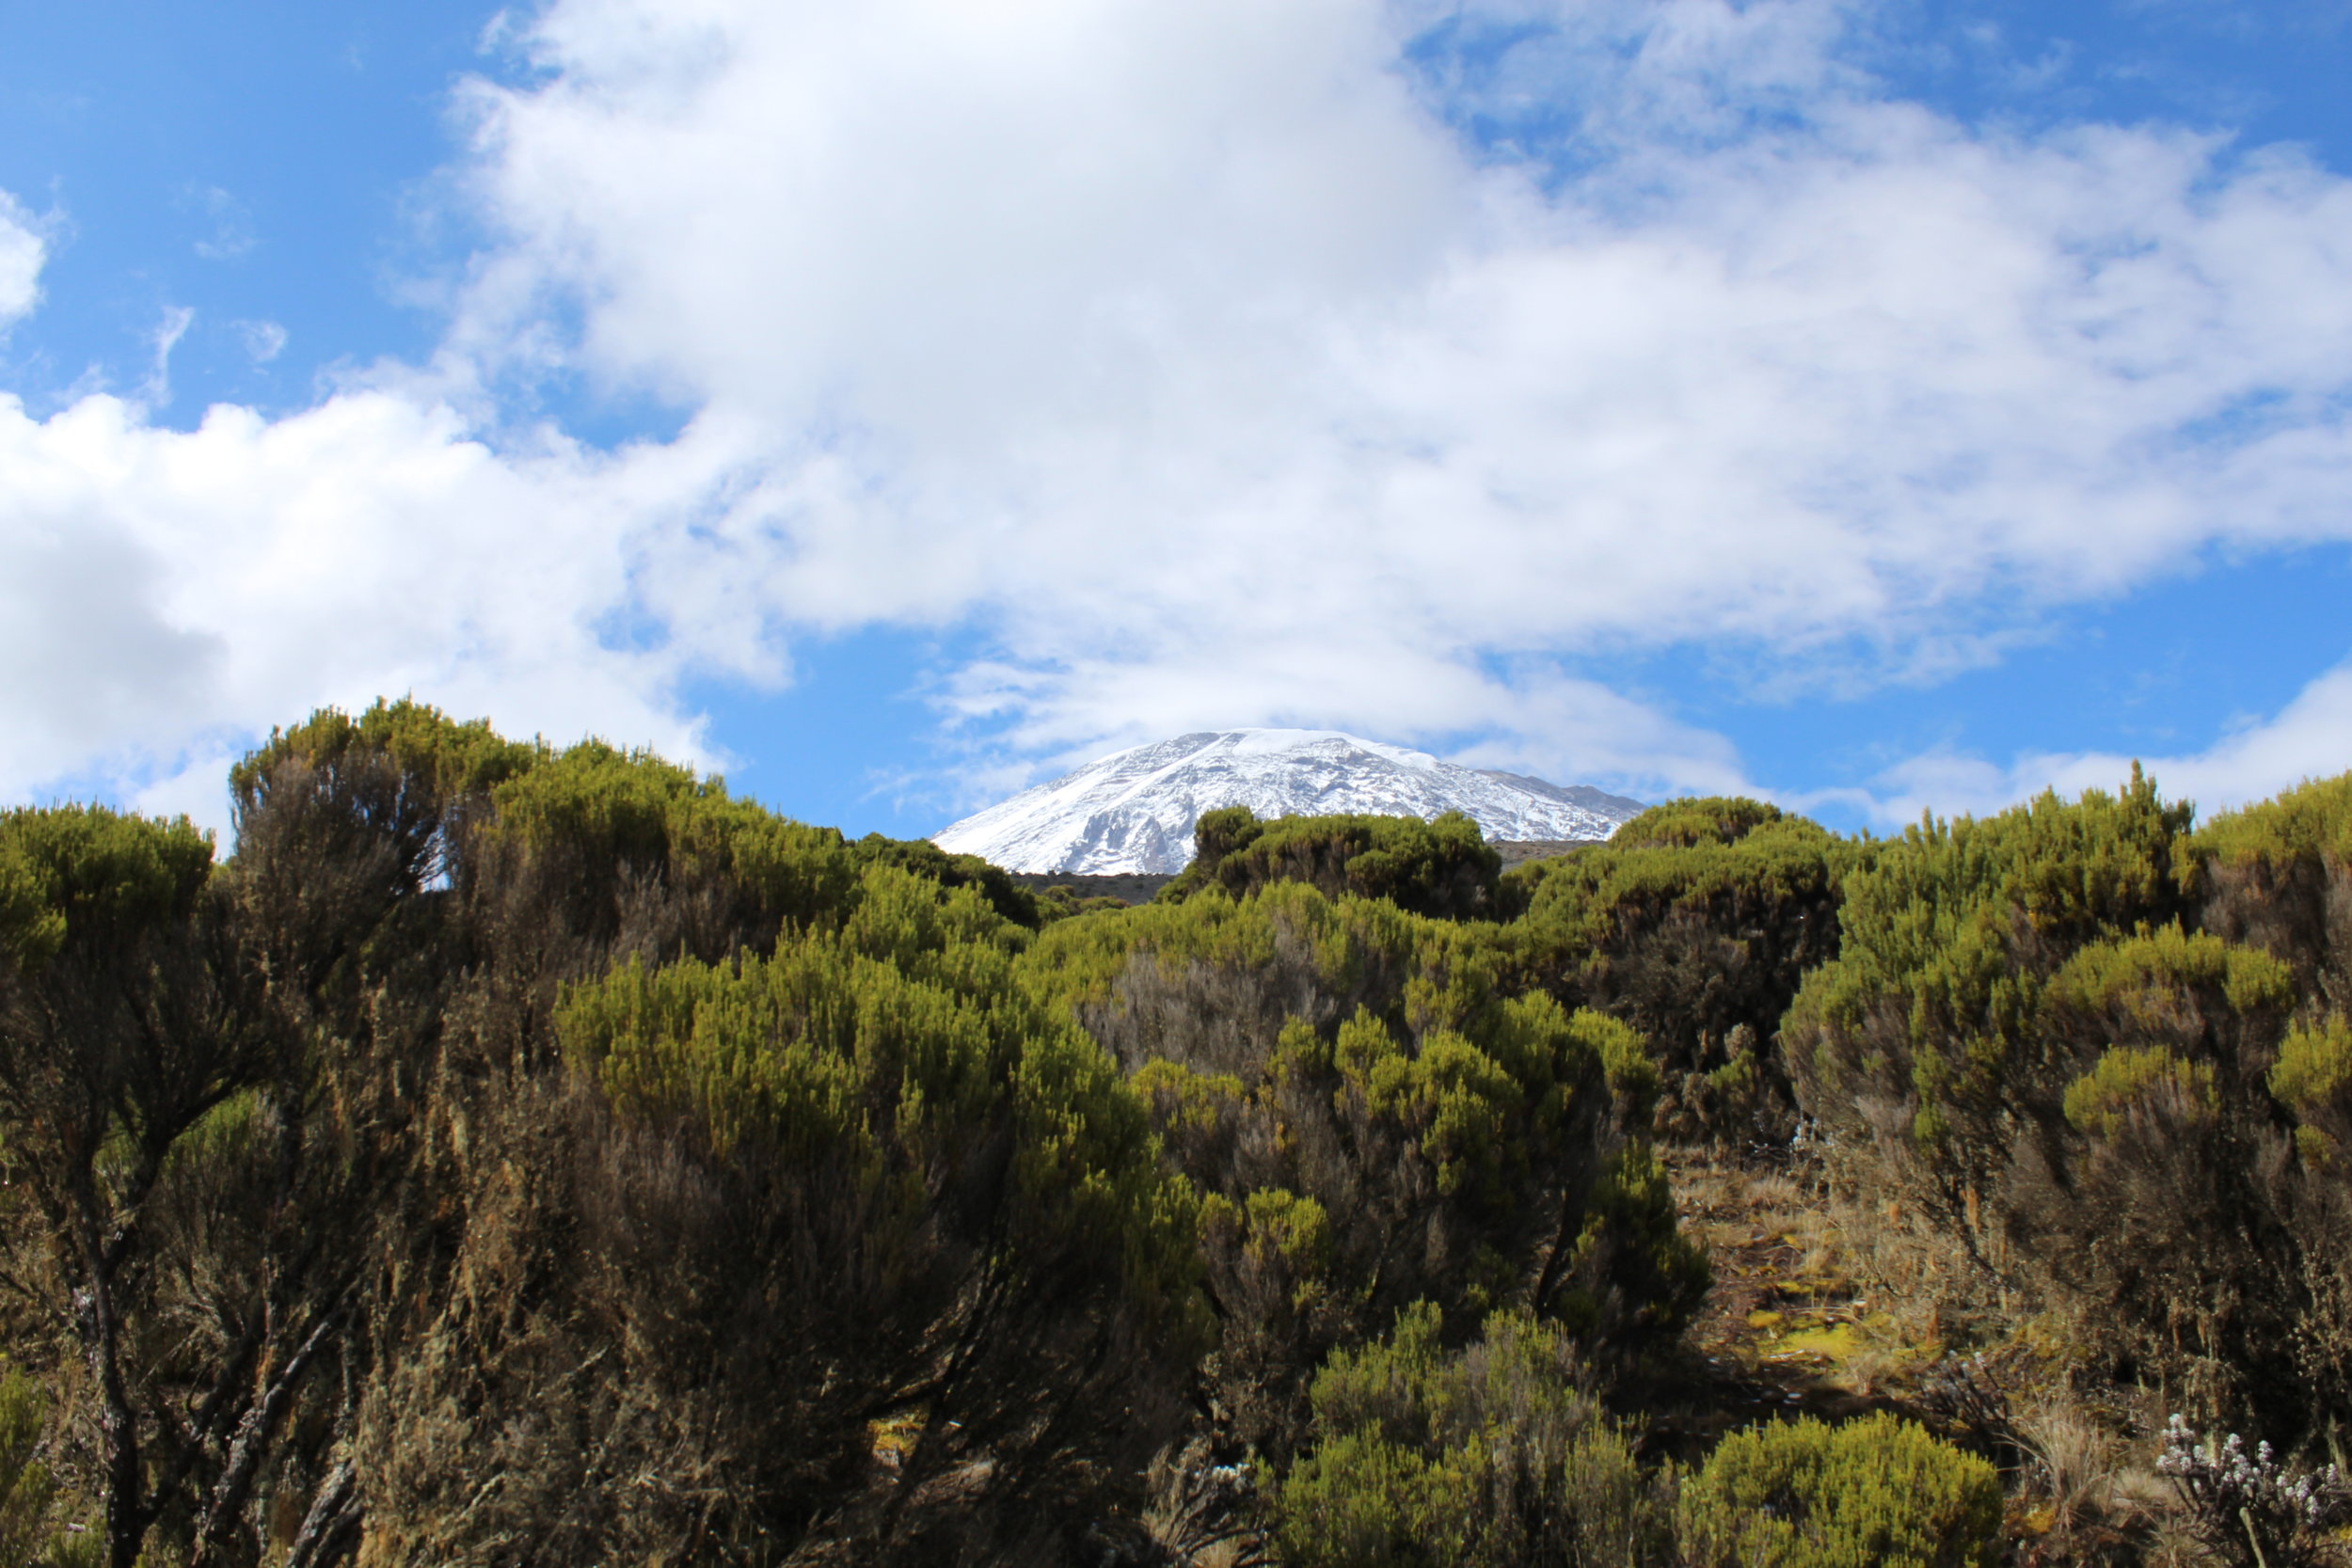 View of Kilimanjaro from Millenium Camp